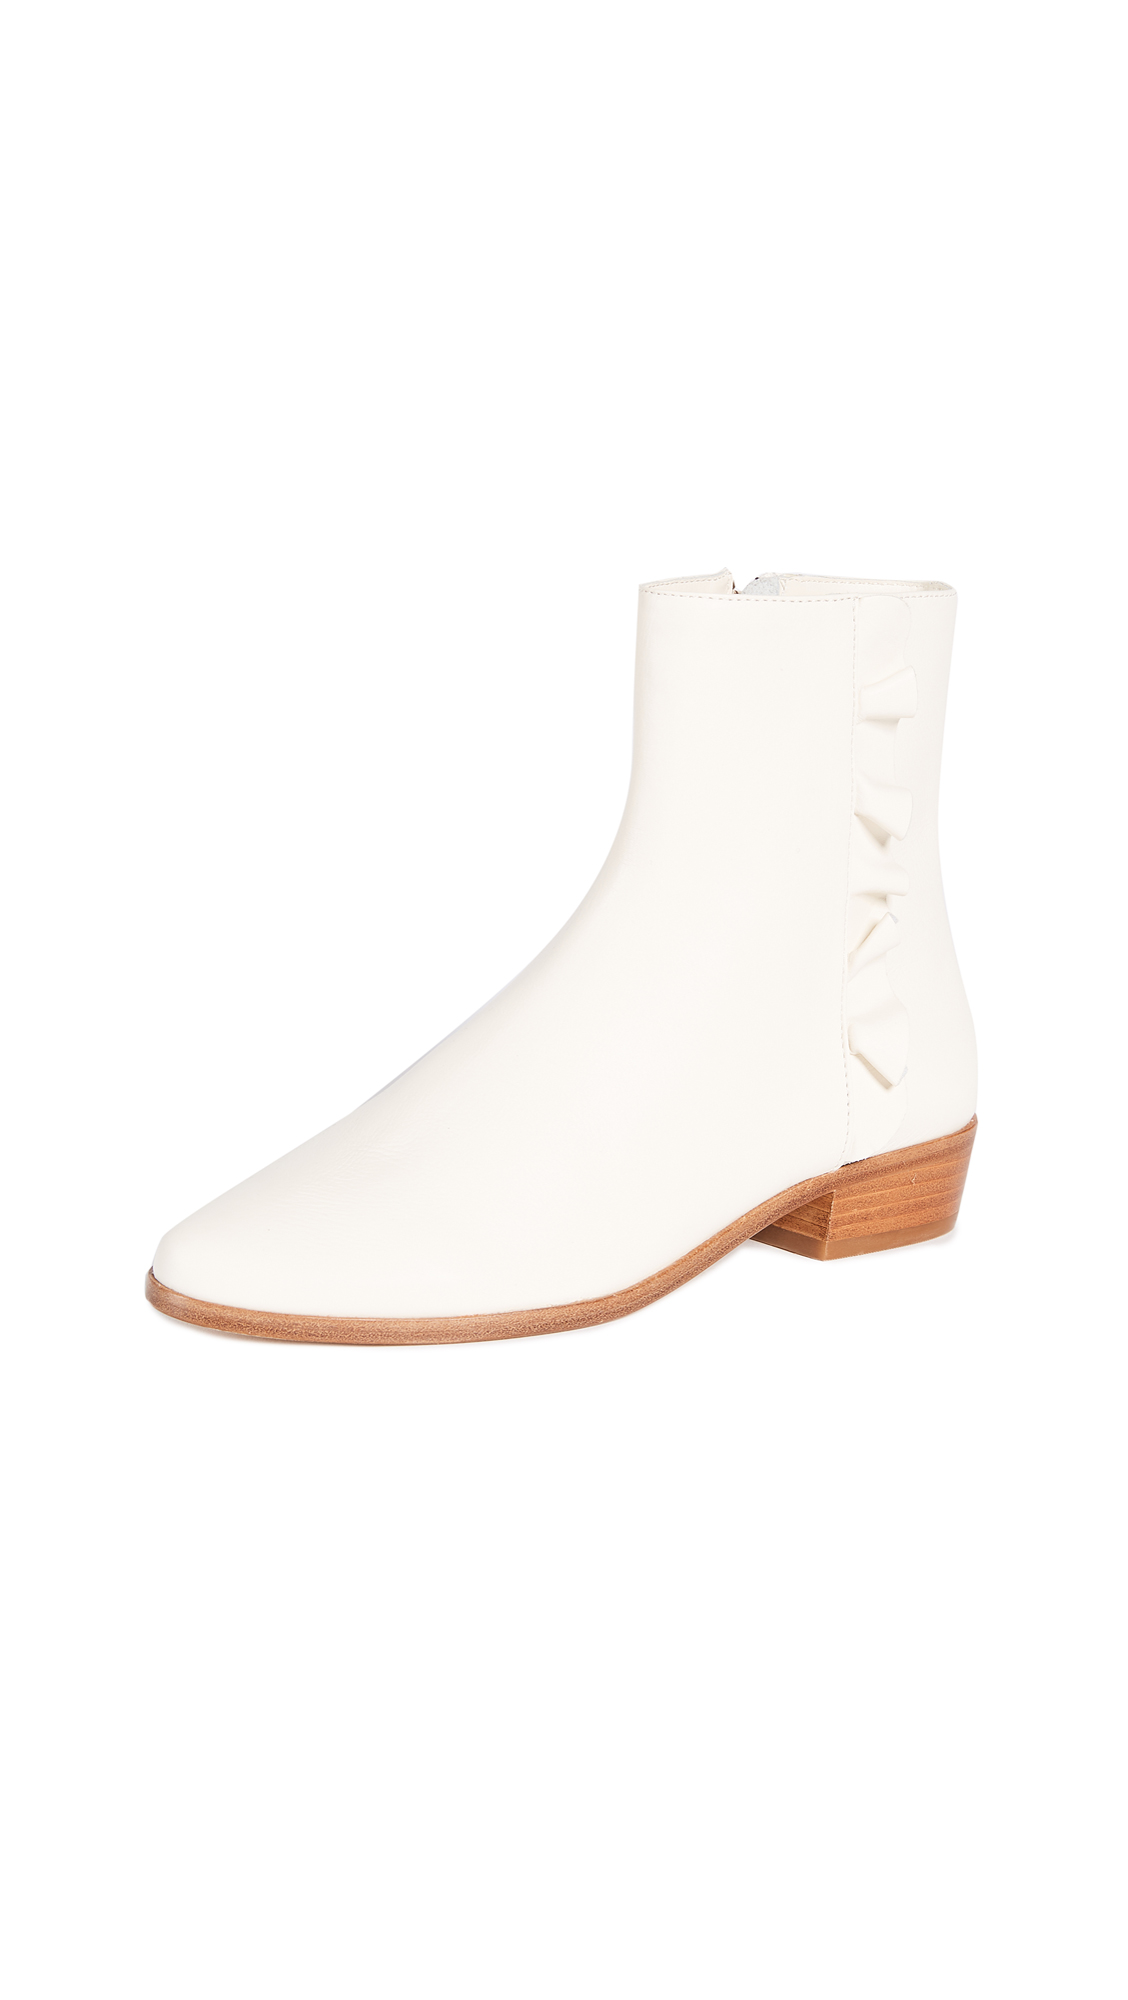 Joie Laleh Booties - Shell